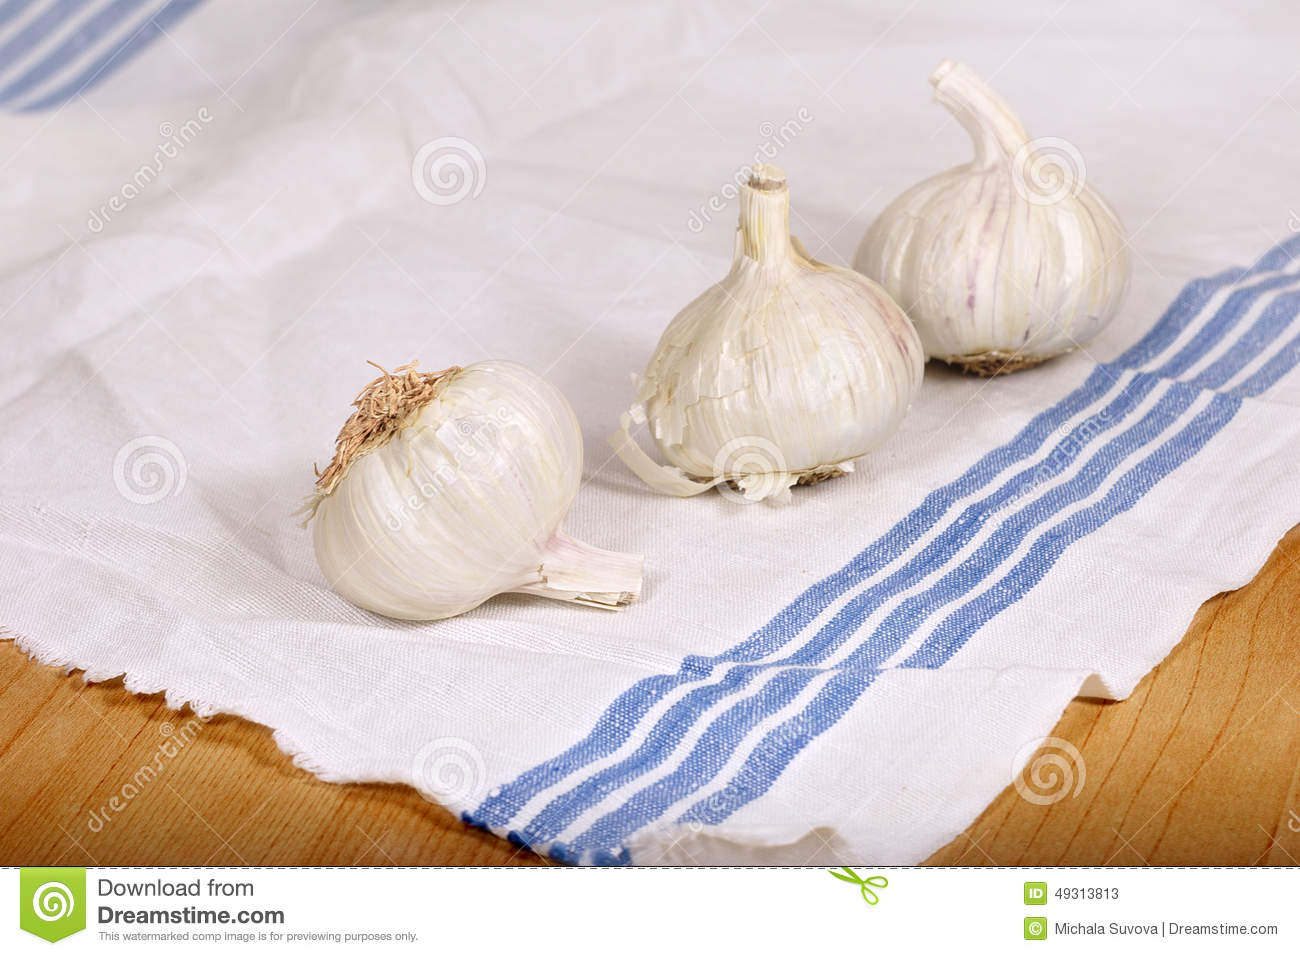 Garlic on kitchen towel